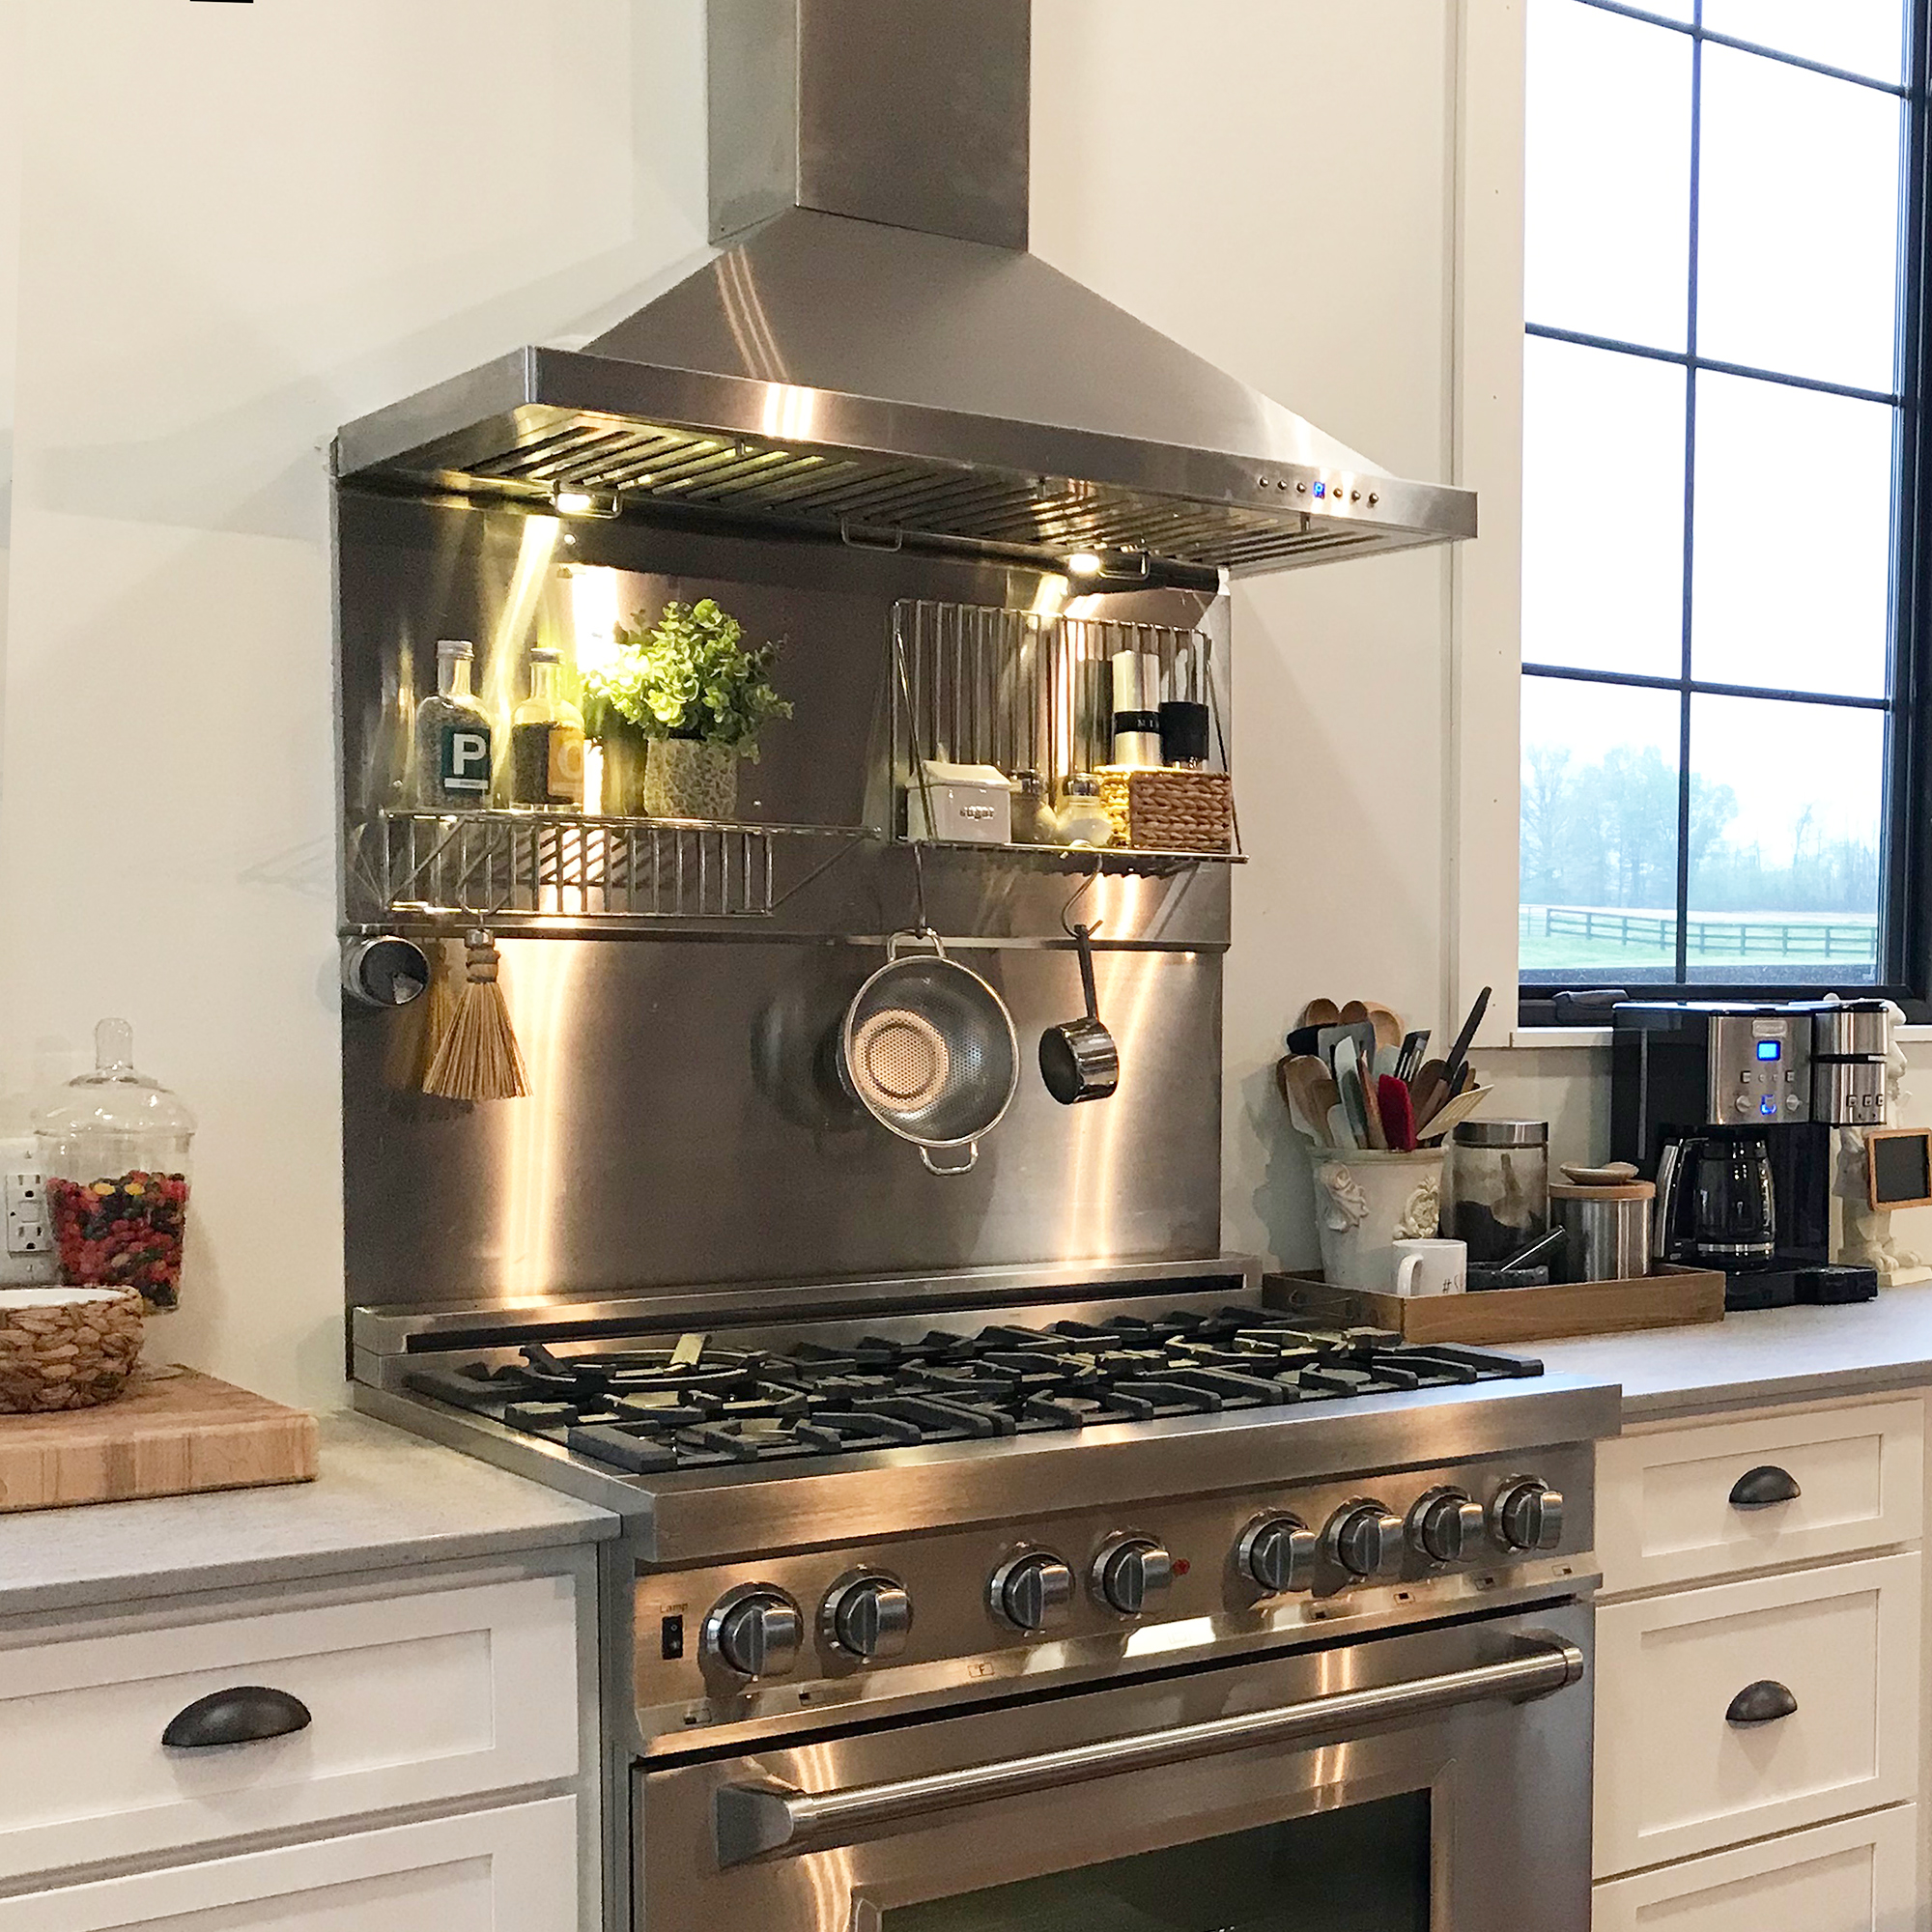 zline-stainless-steel-wall-mounted-range-hood-KB-customer-kitchen-2 copy 2.jpg